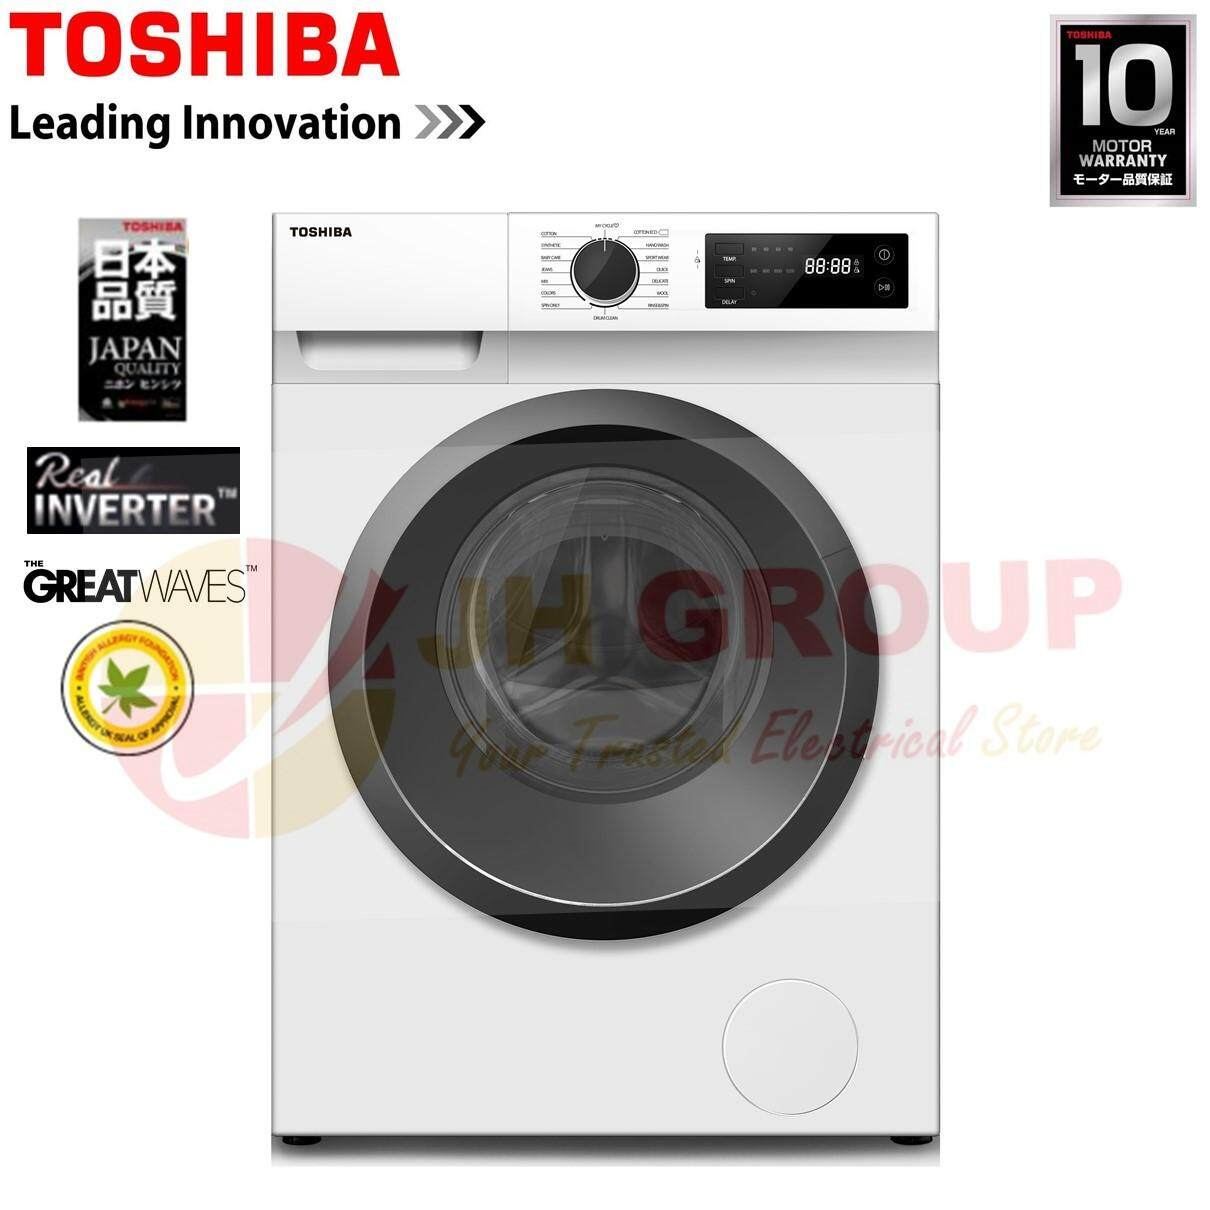 TOSHIBA 8.5KG INVERTER FRONT LOAD WASHER TW-BH95S2M WASHING MACHINE MESIN BASUH 洗衣机 *SIMILAR WW85J44G0BW FC1208N5W NA-128XB1WMY MFL80-S1401C EWF8025CQWA